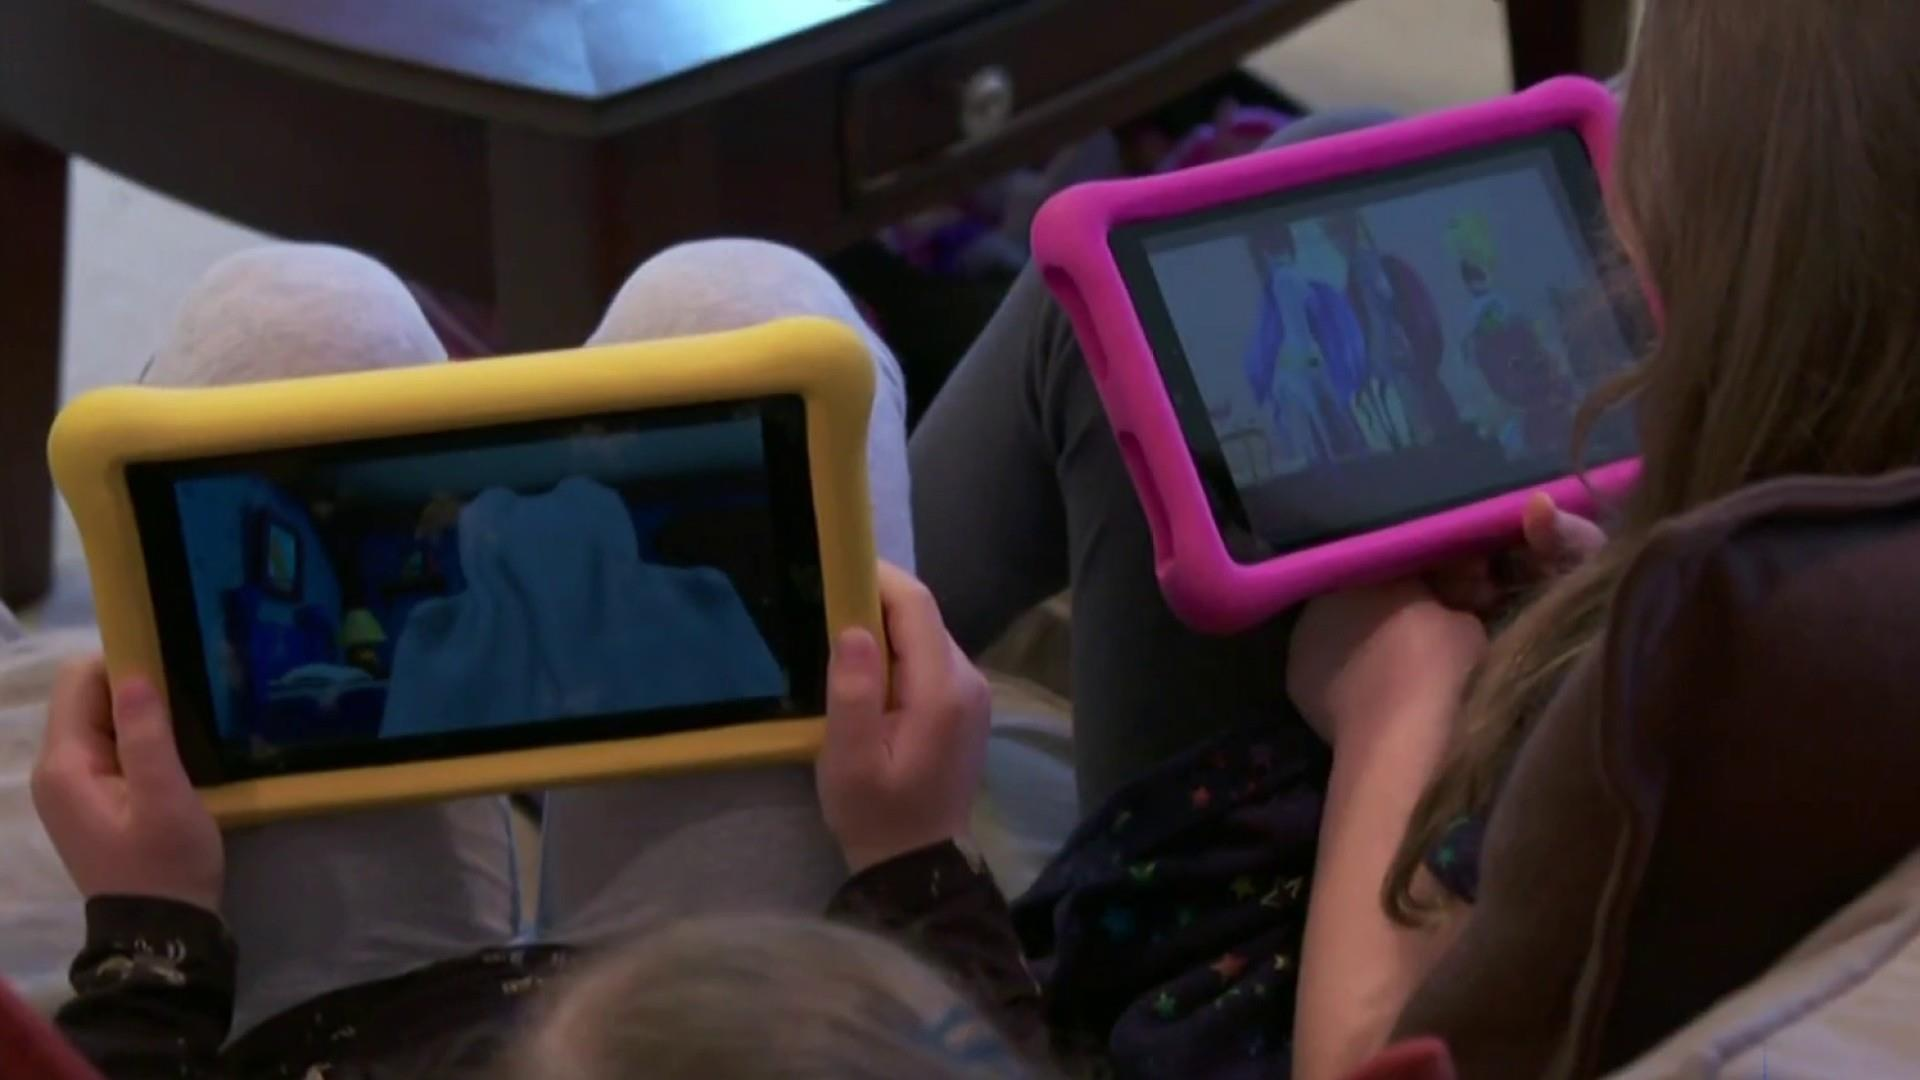 New warnings about screen time and how it can impact your health